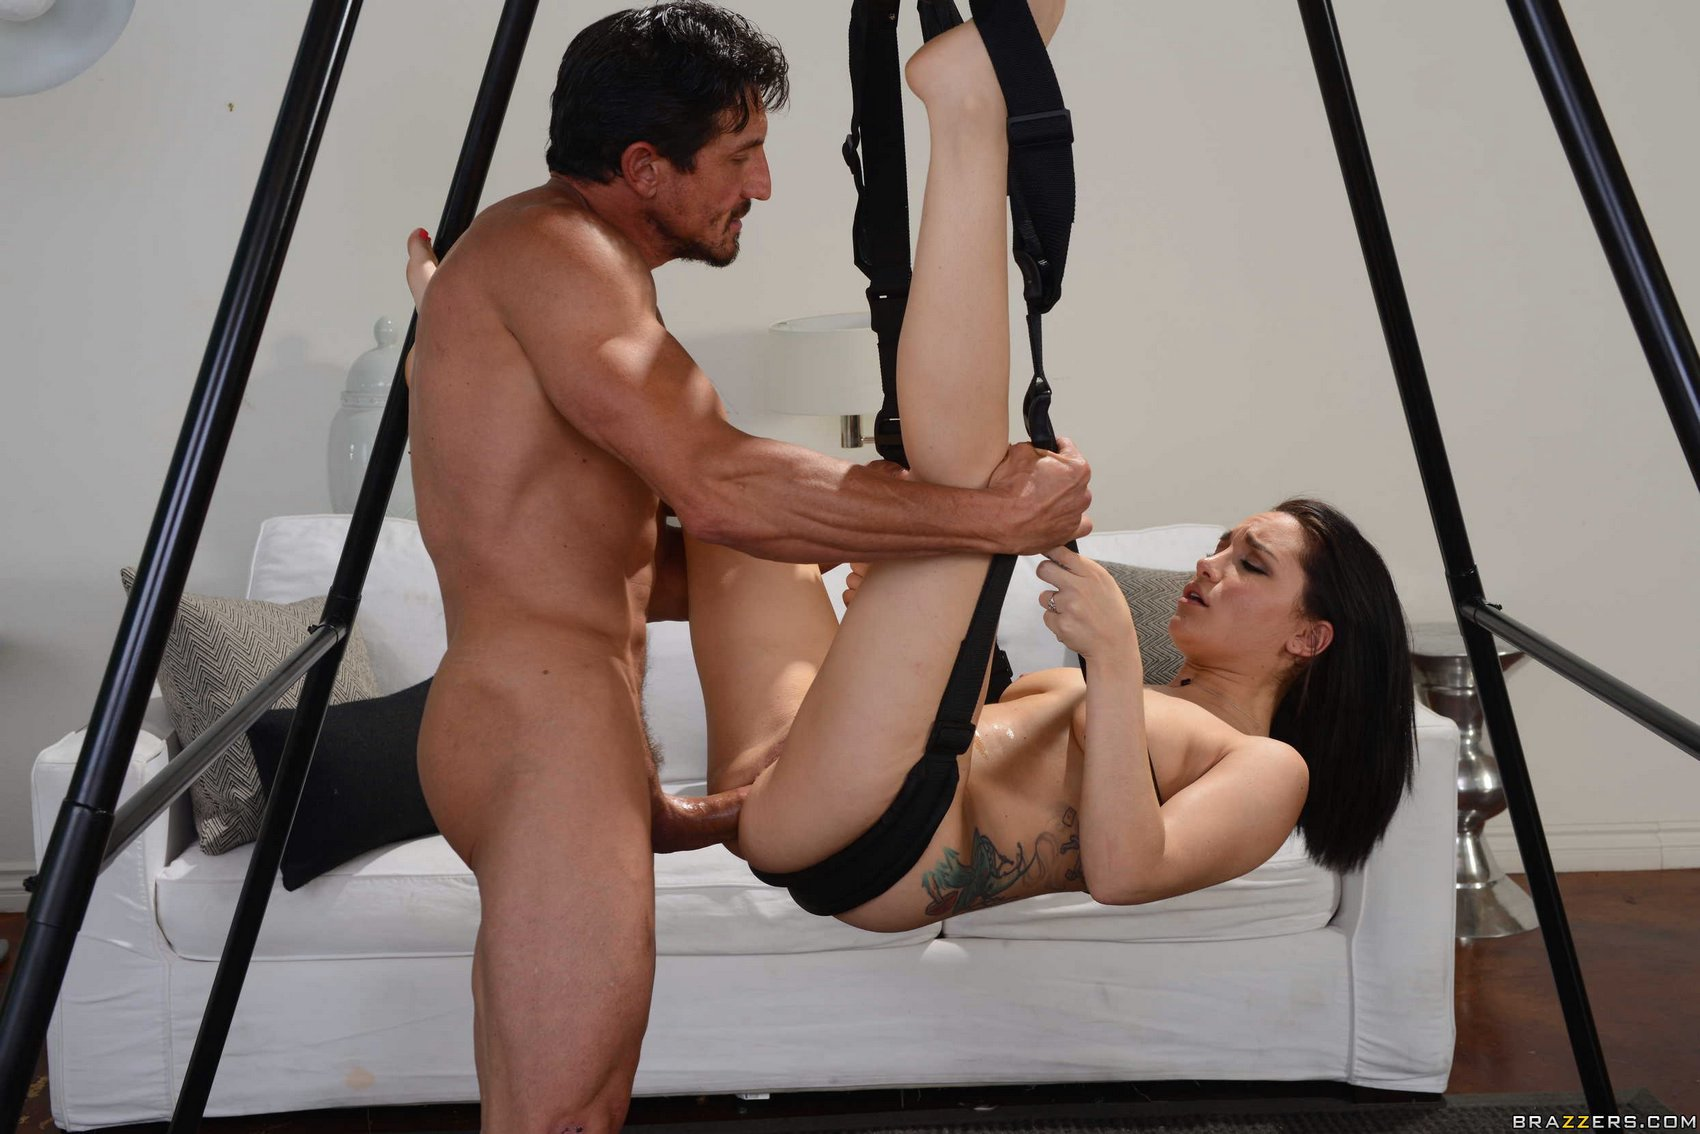 Sex swing y soporte